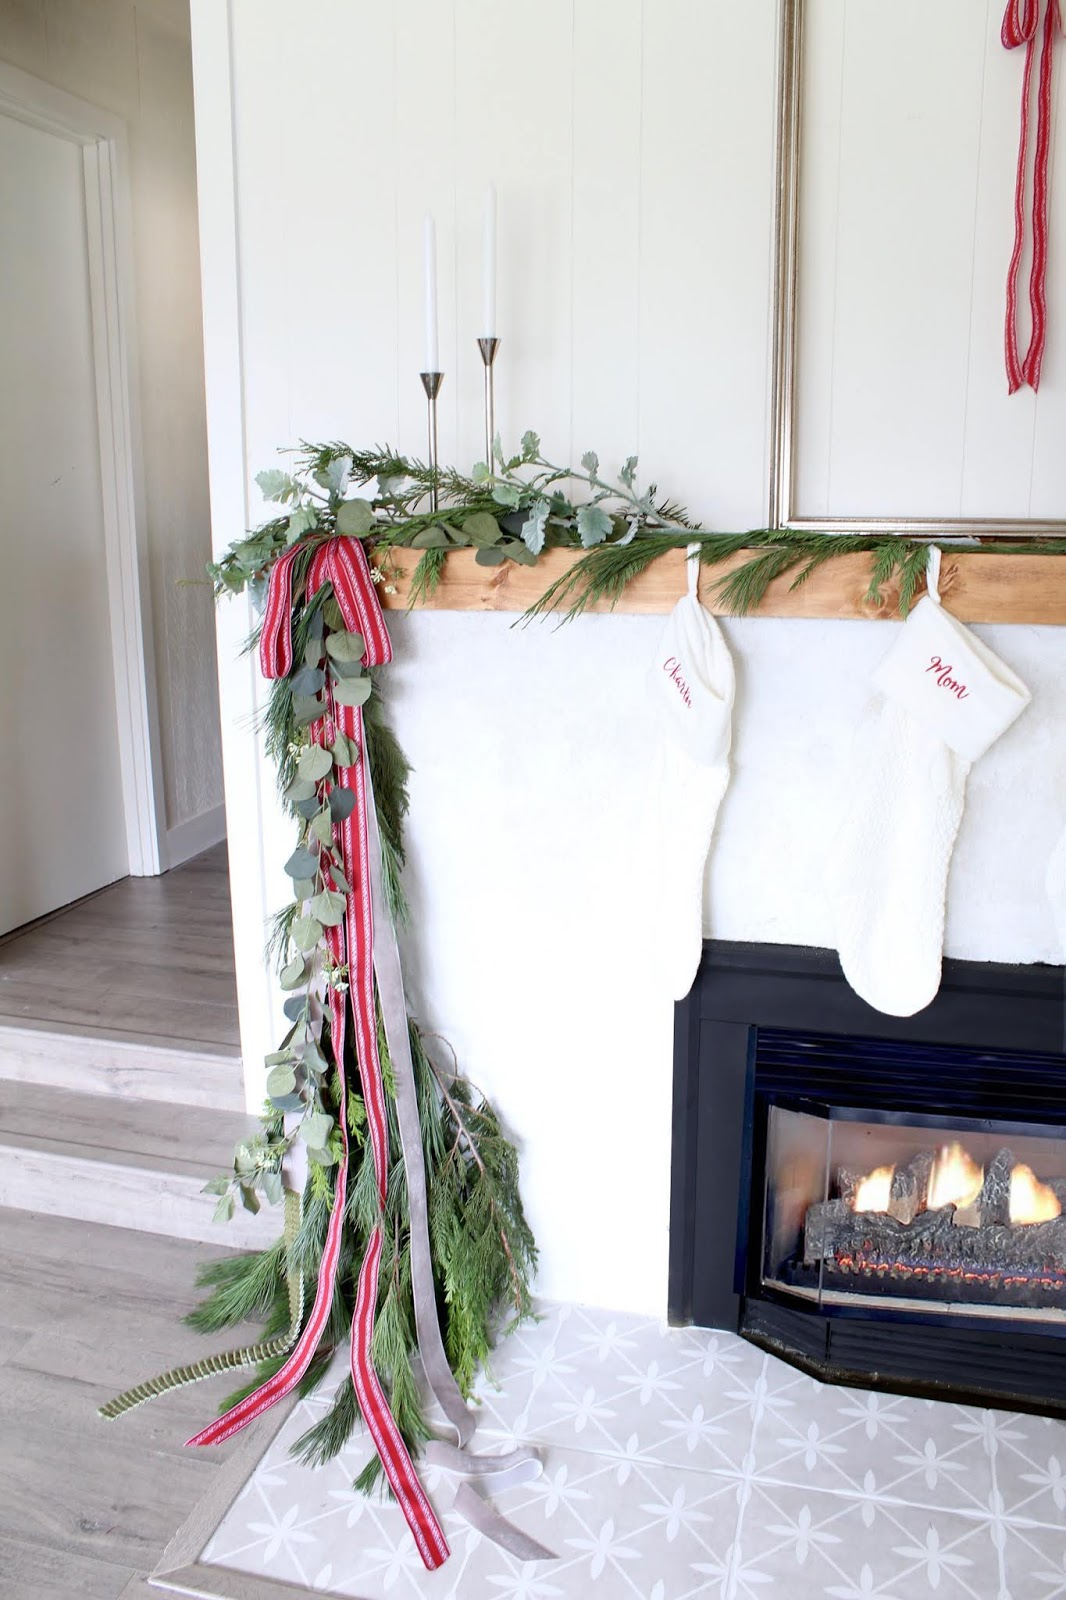 Modern holiday mantel ideas harlow thistle home - Modern christmas mantel ideas ...